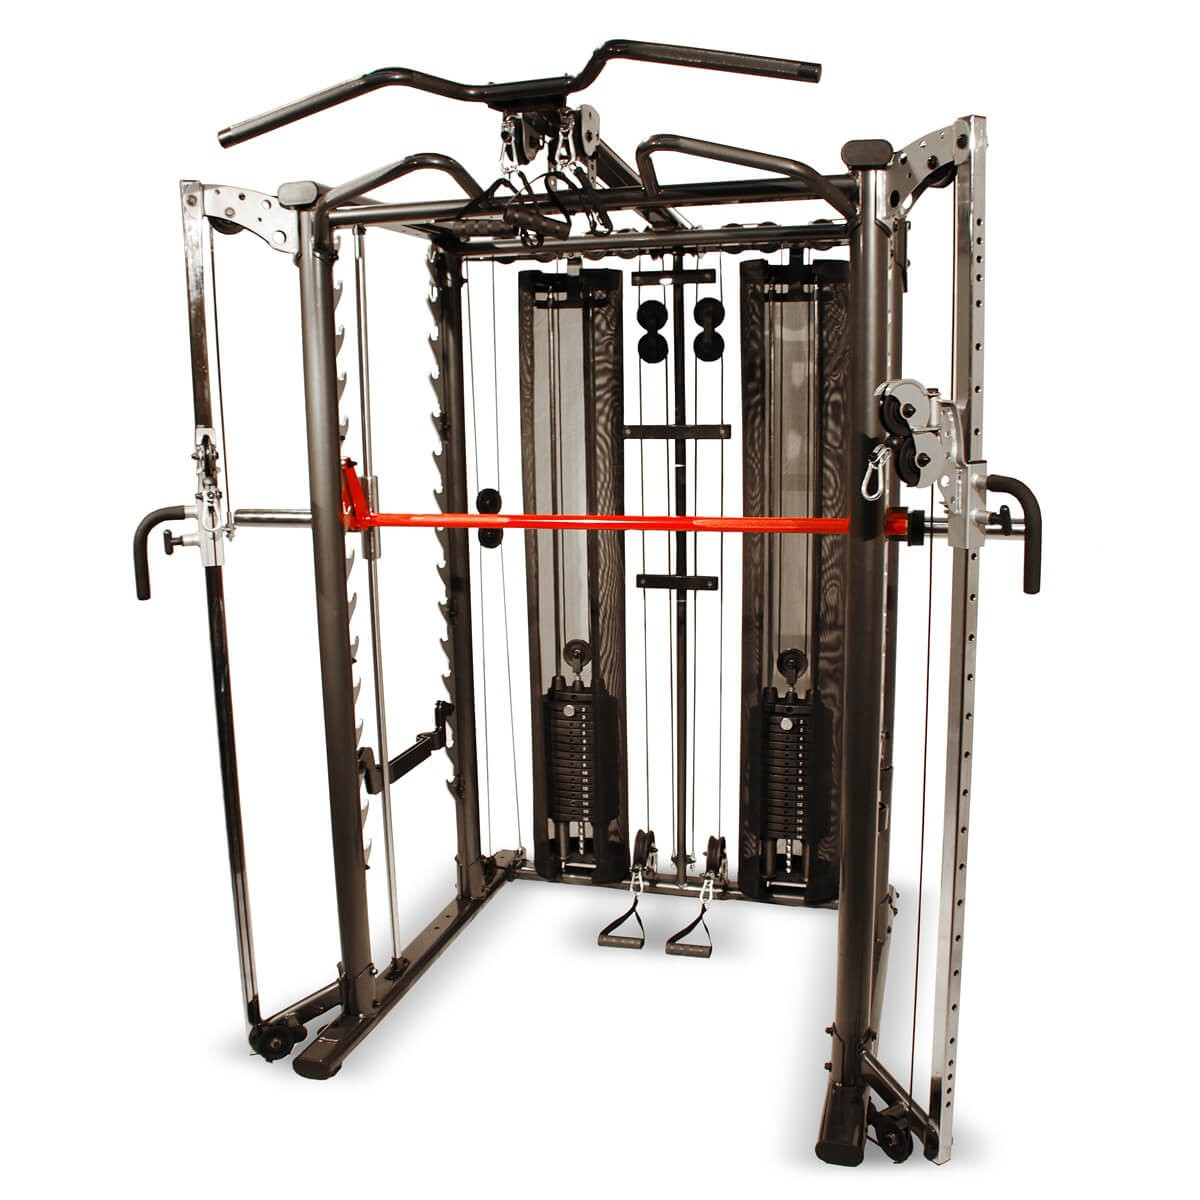 Inspire by hammer scs smith cage system buy now